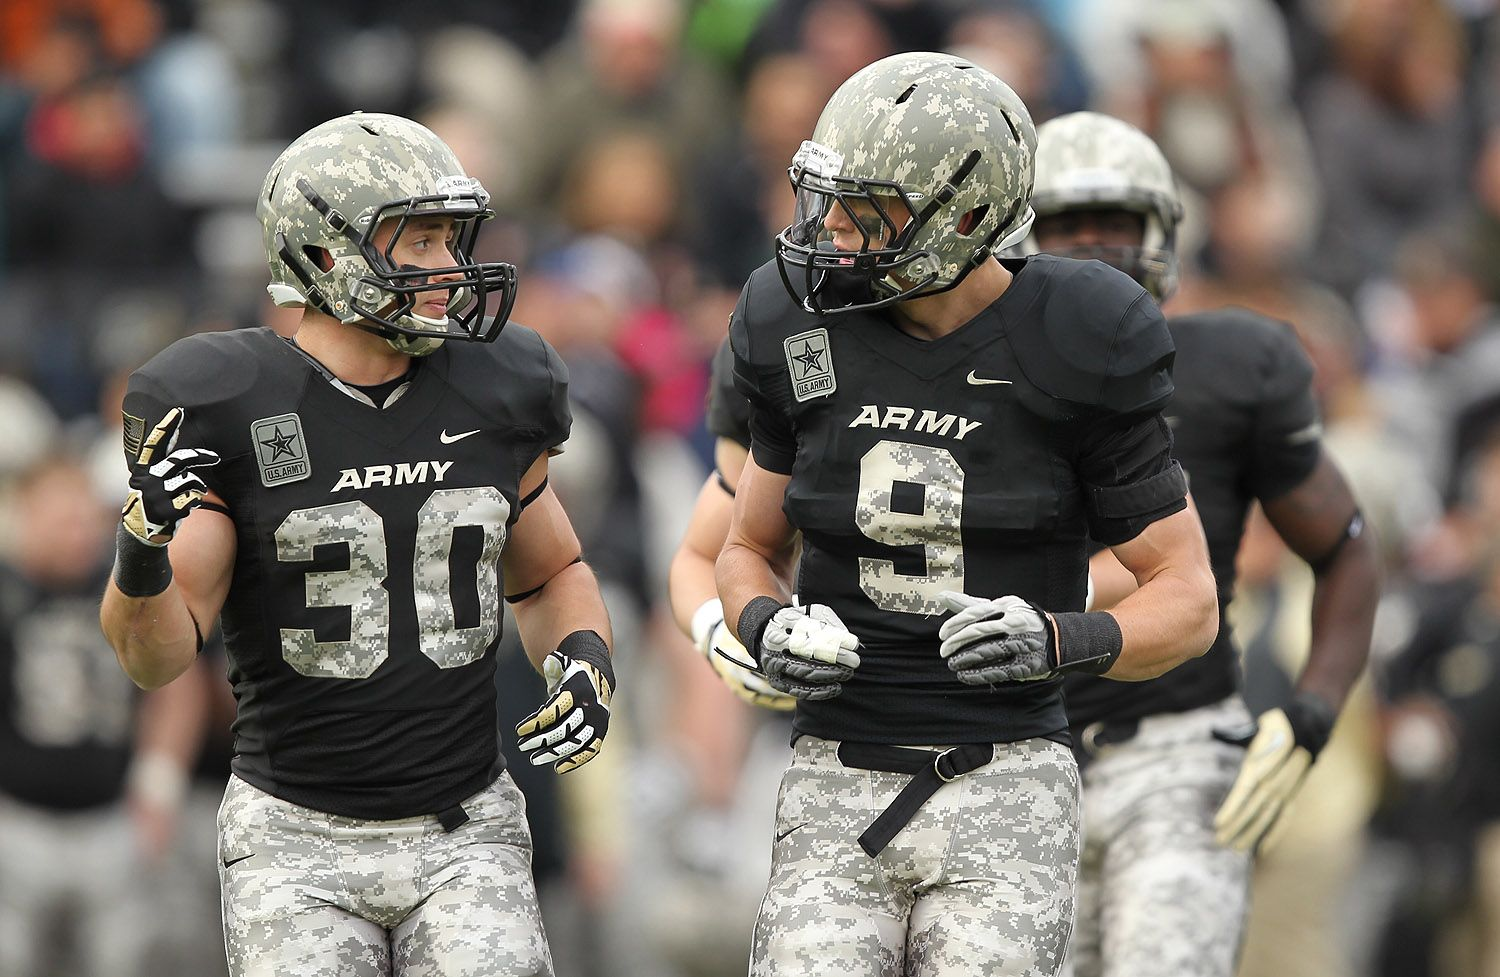 Army is the only team able to pull off camo esp this